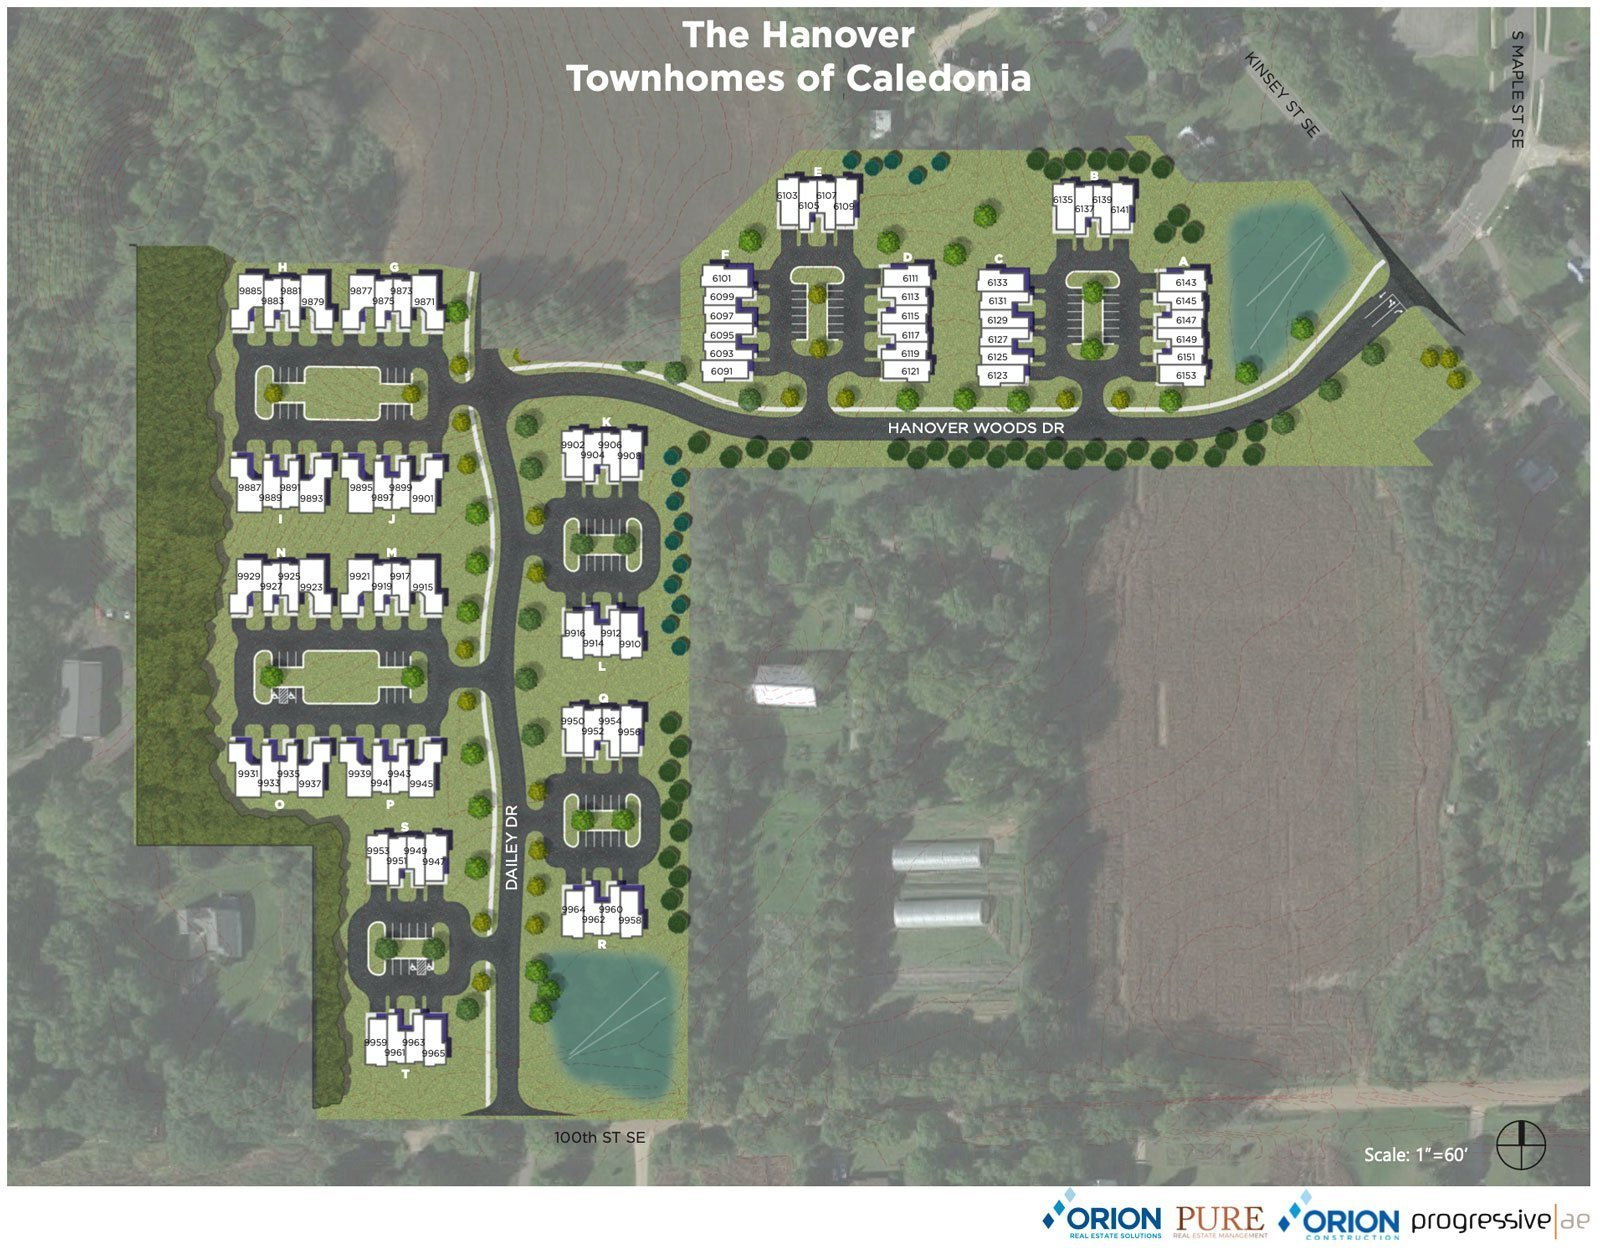 Site Plans for The Hanover Townhomes of Caledonia